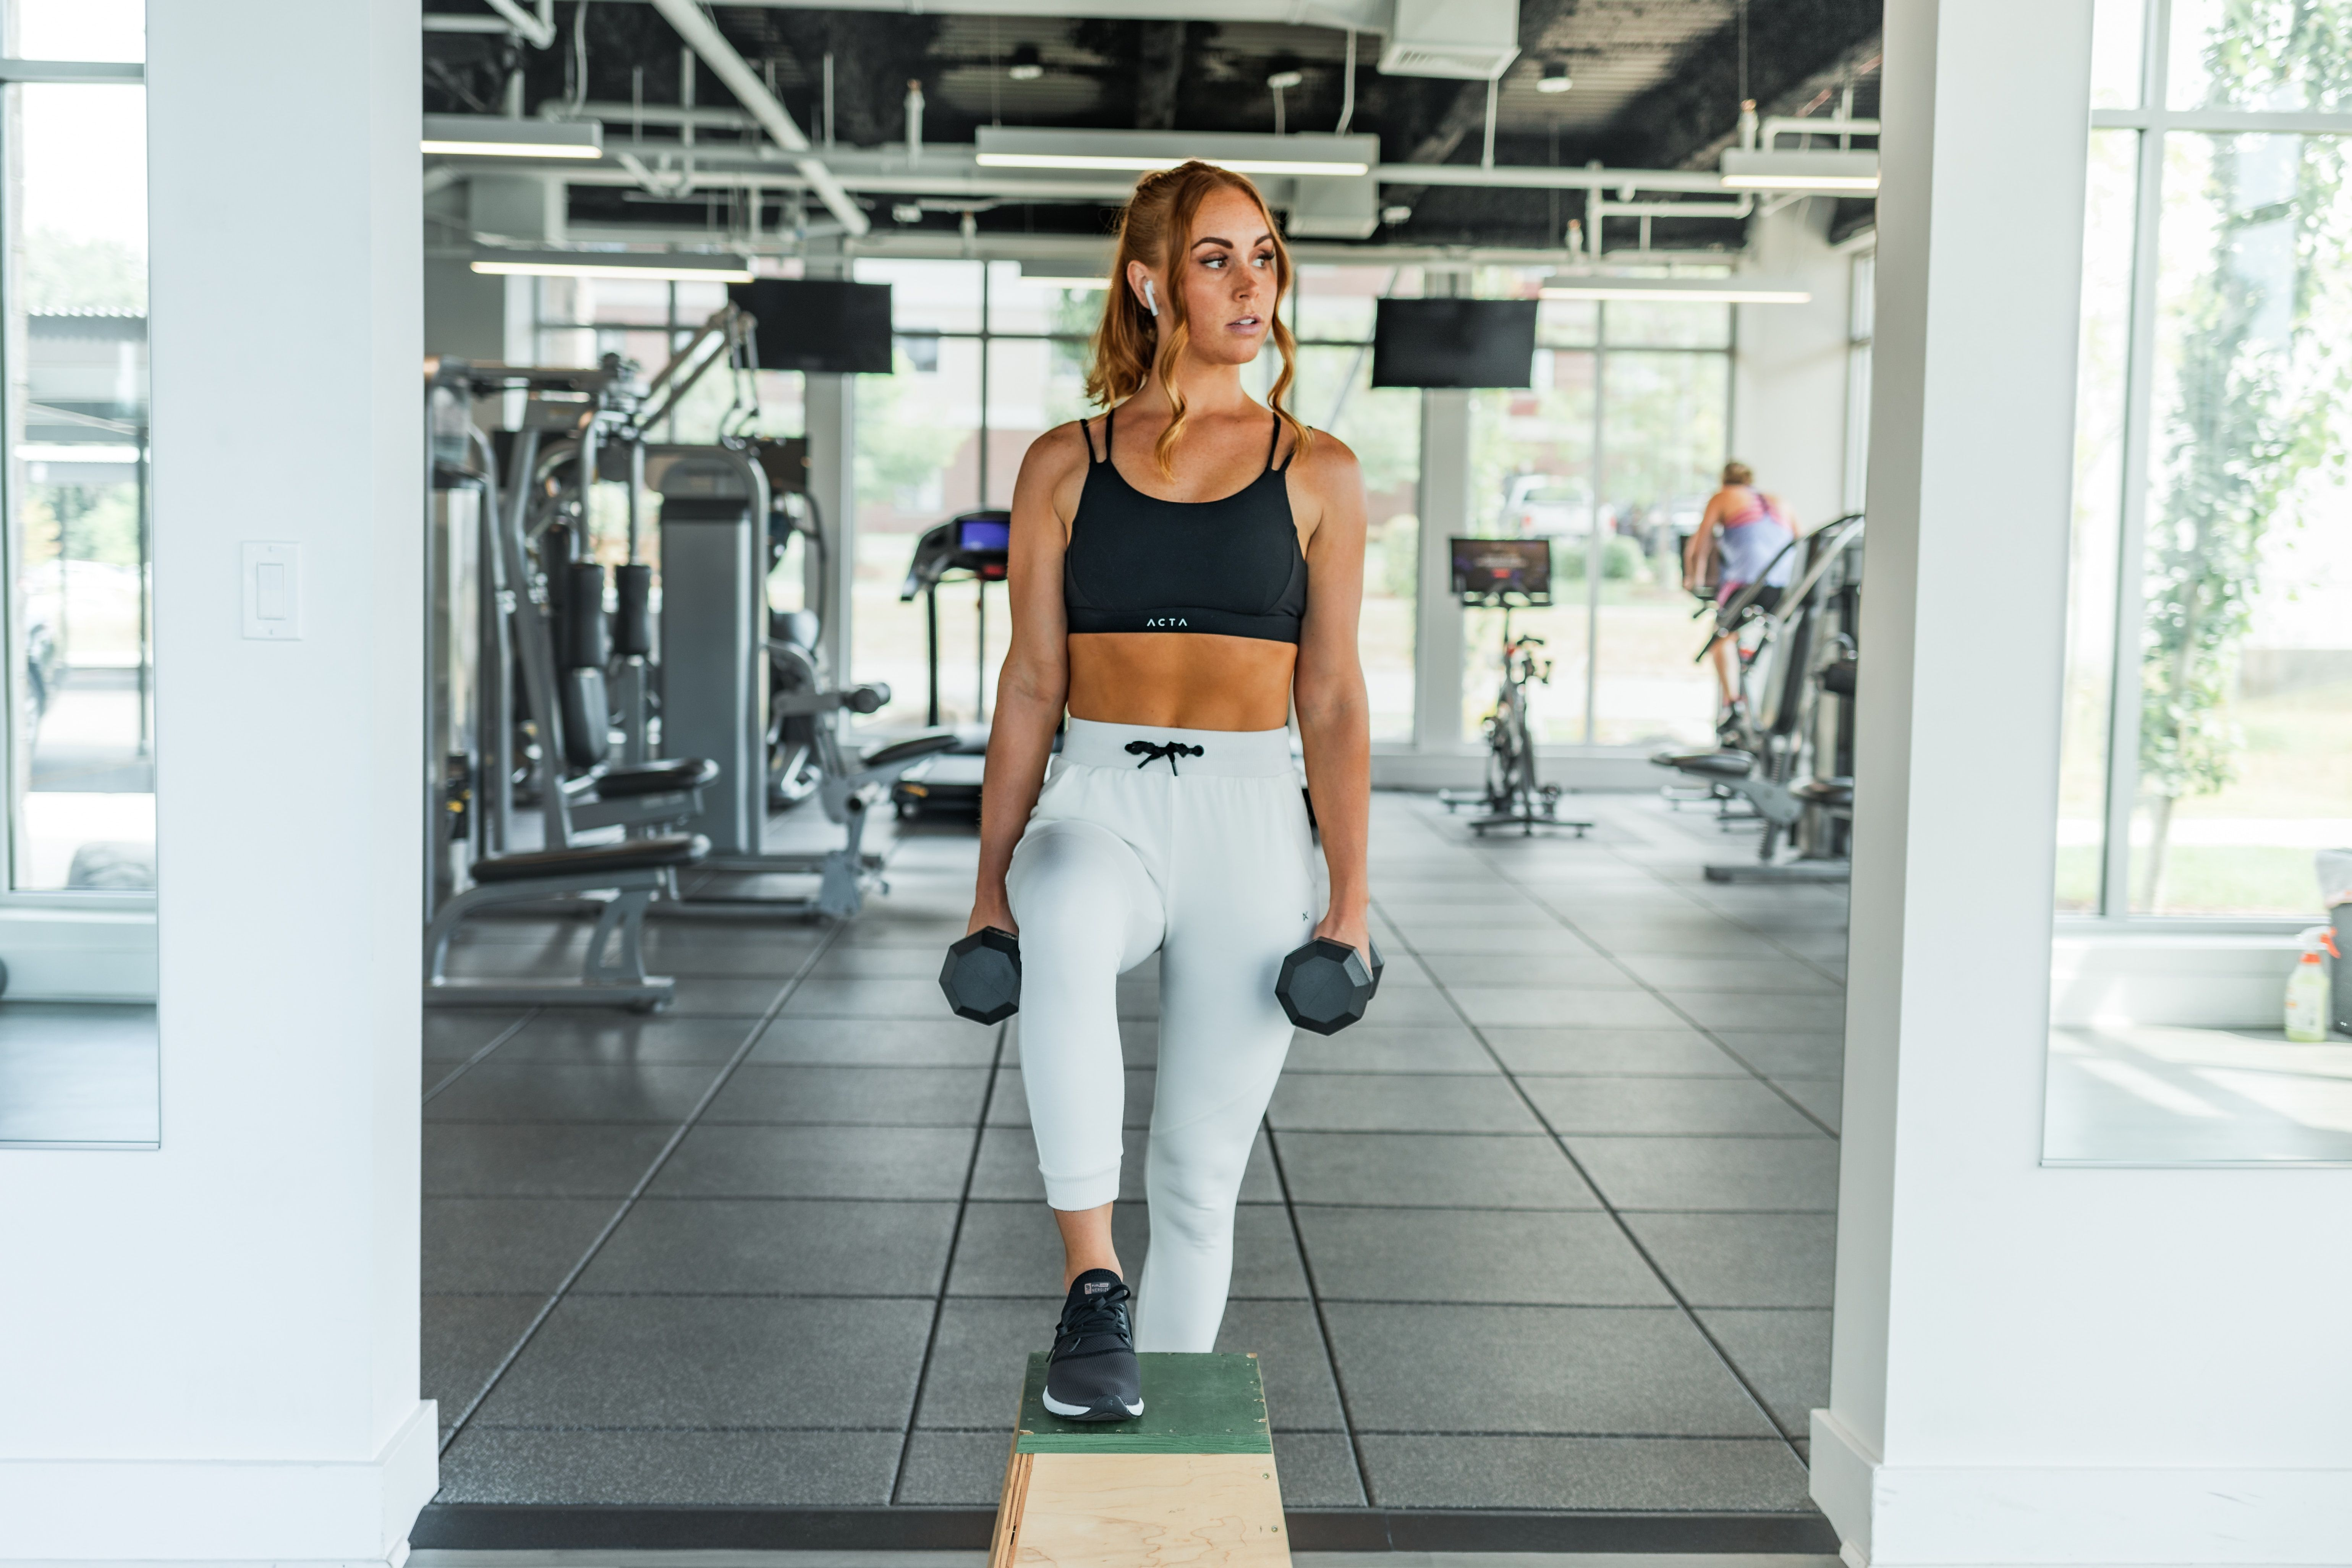 High Intensity vs Low Intensity Workouts - This Is How to Hit Your Weekly Sweet Spot